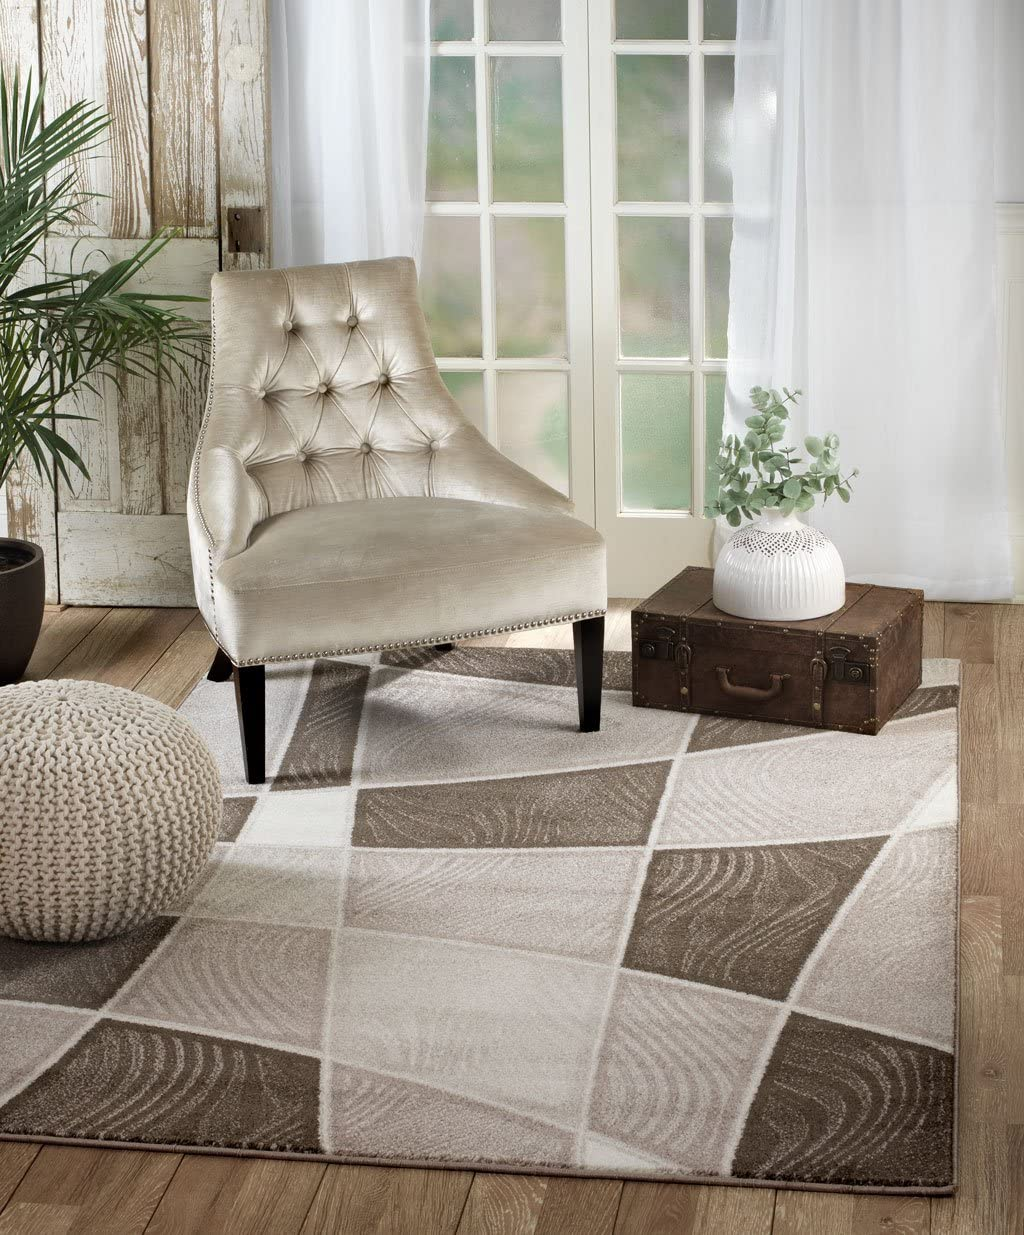 Rio Summit 303 Taupe Brown Area Rug Modern Abstract Many Sizes Available 5 x 7 .2 , 5 x 7 .2